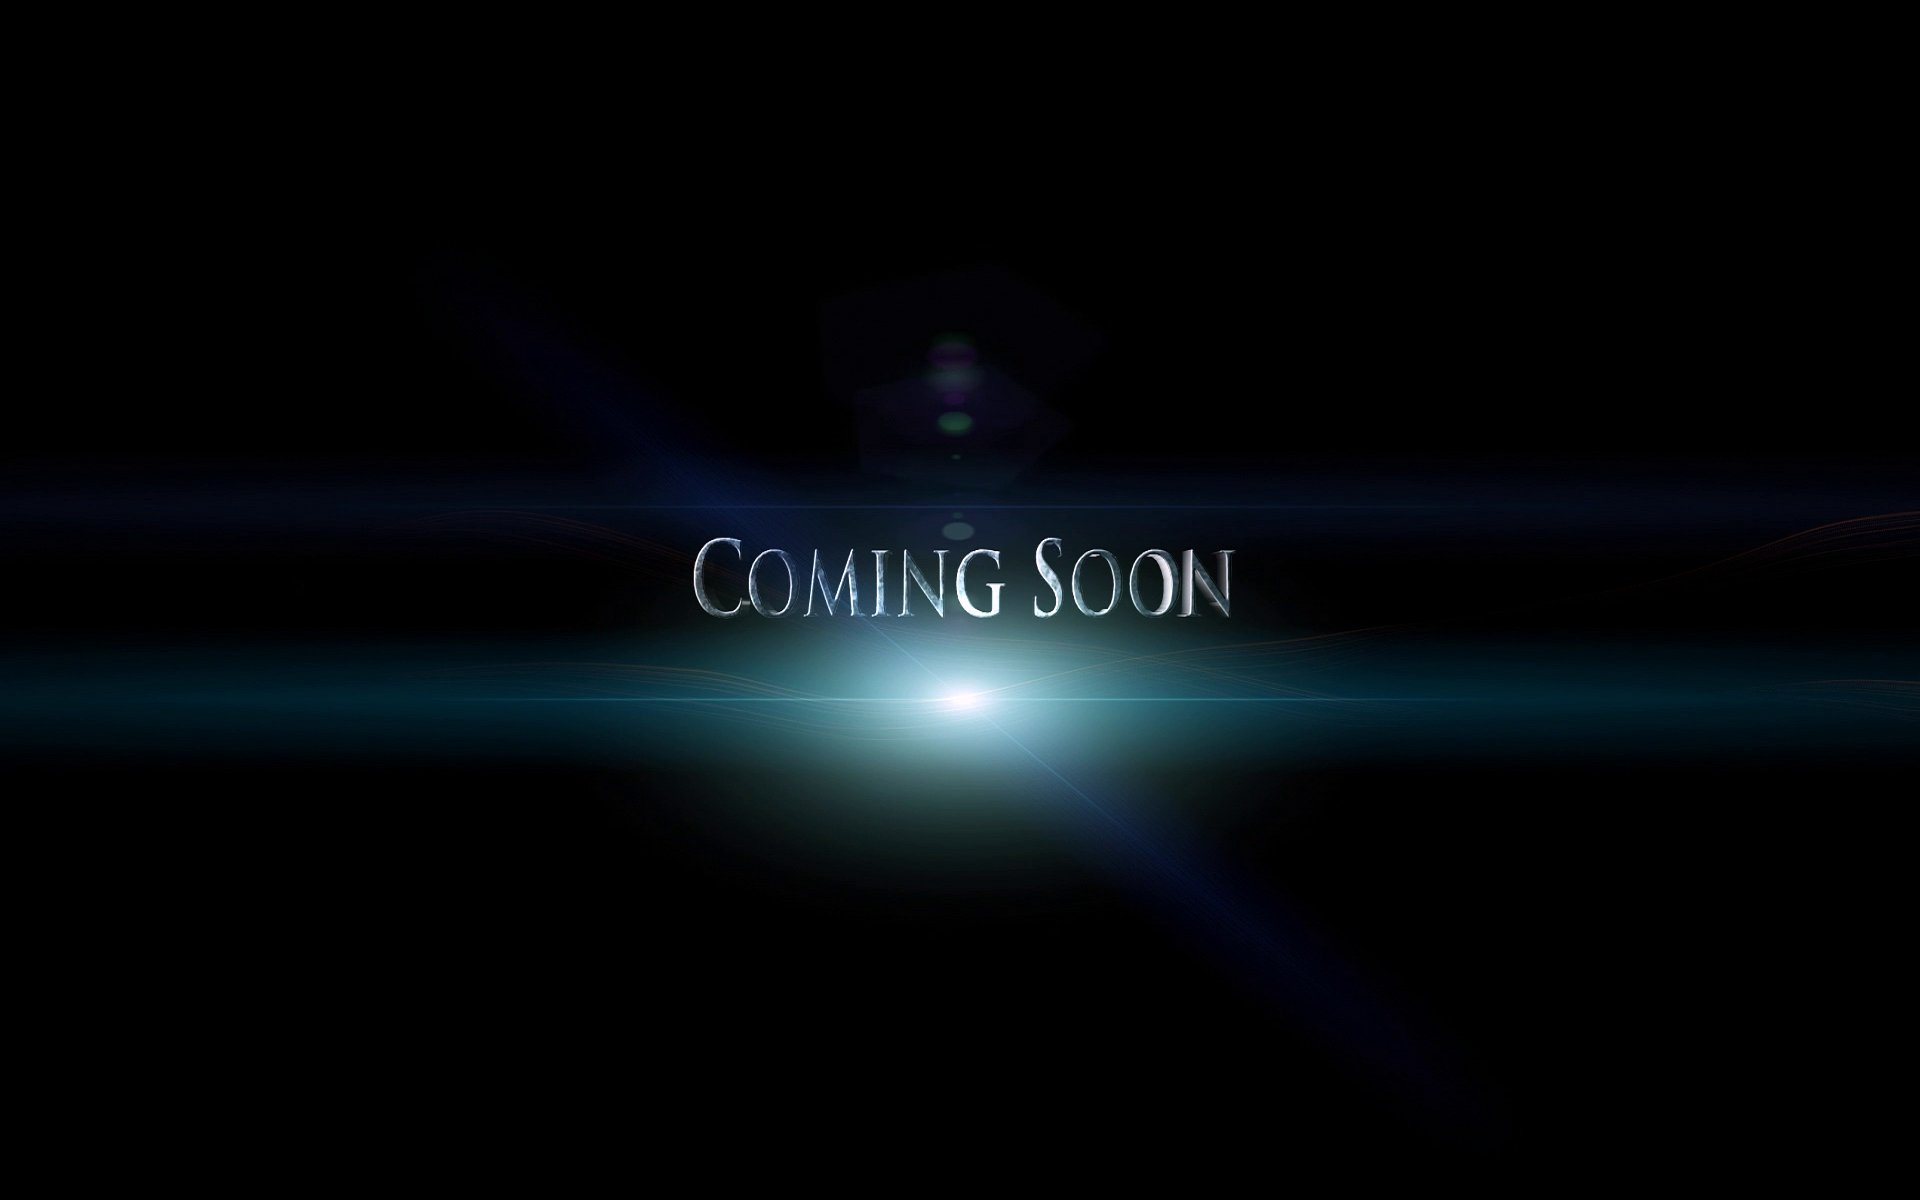 lights coming soon design background #3698